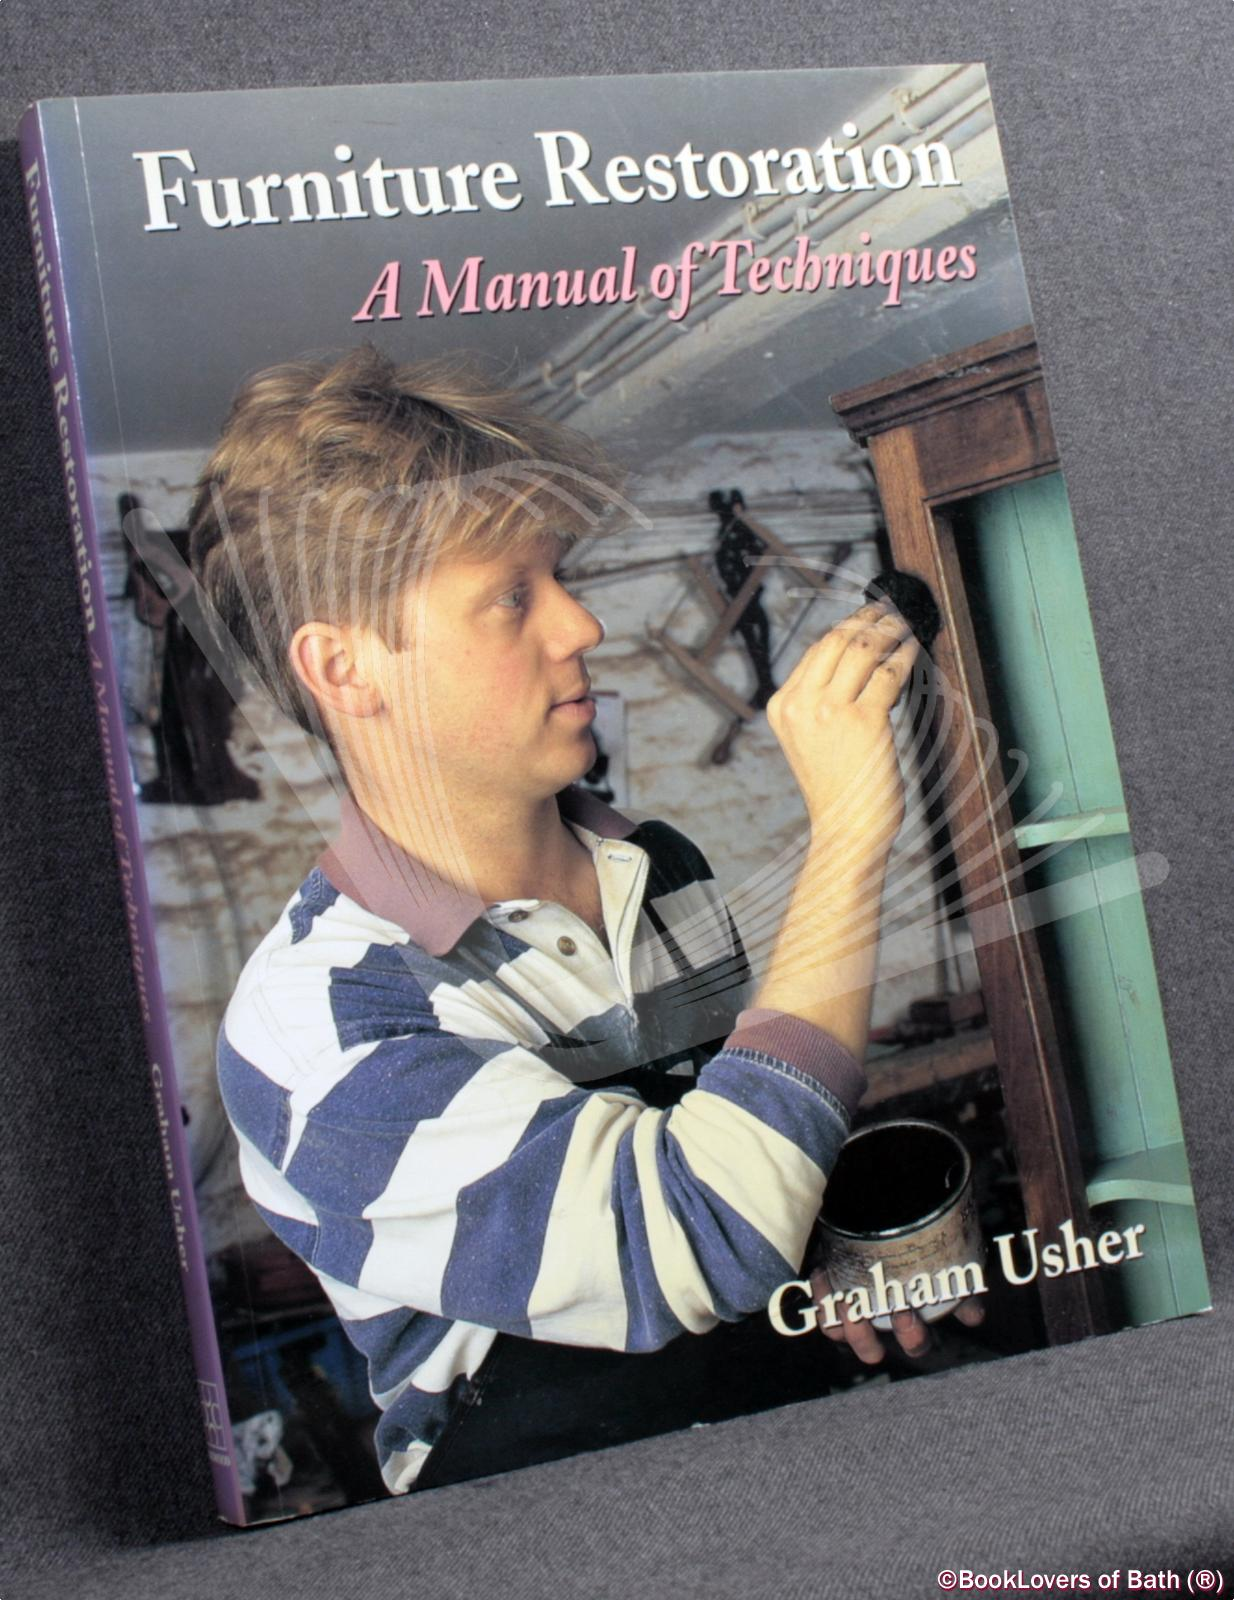 Furniture Restoration: A Manual of Techniques - Graham Usher